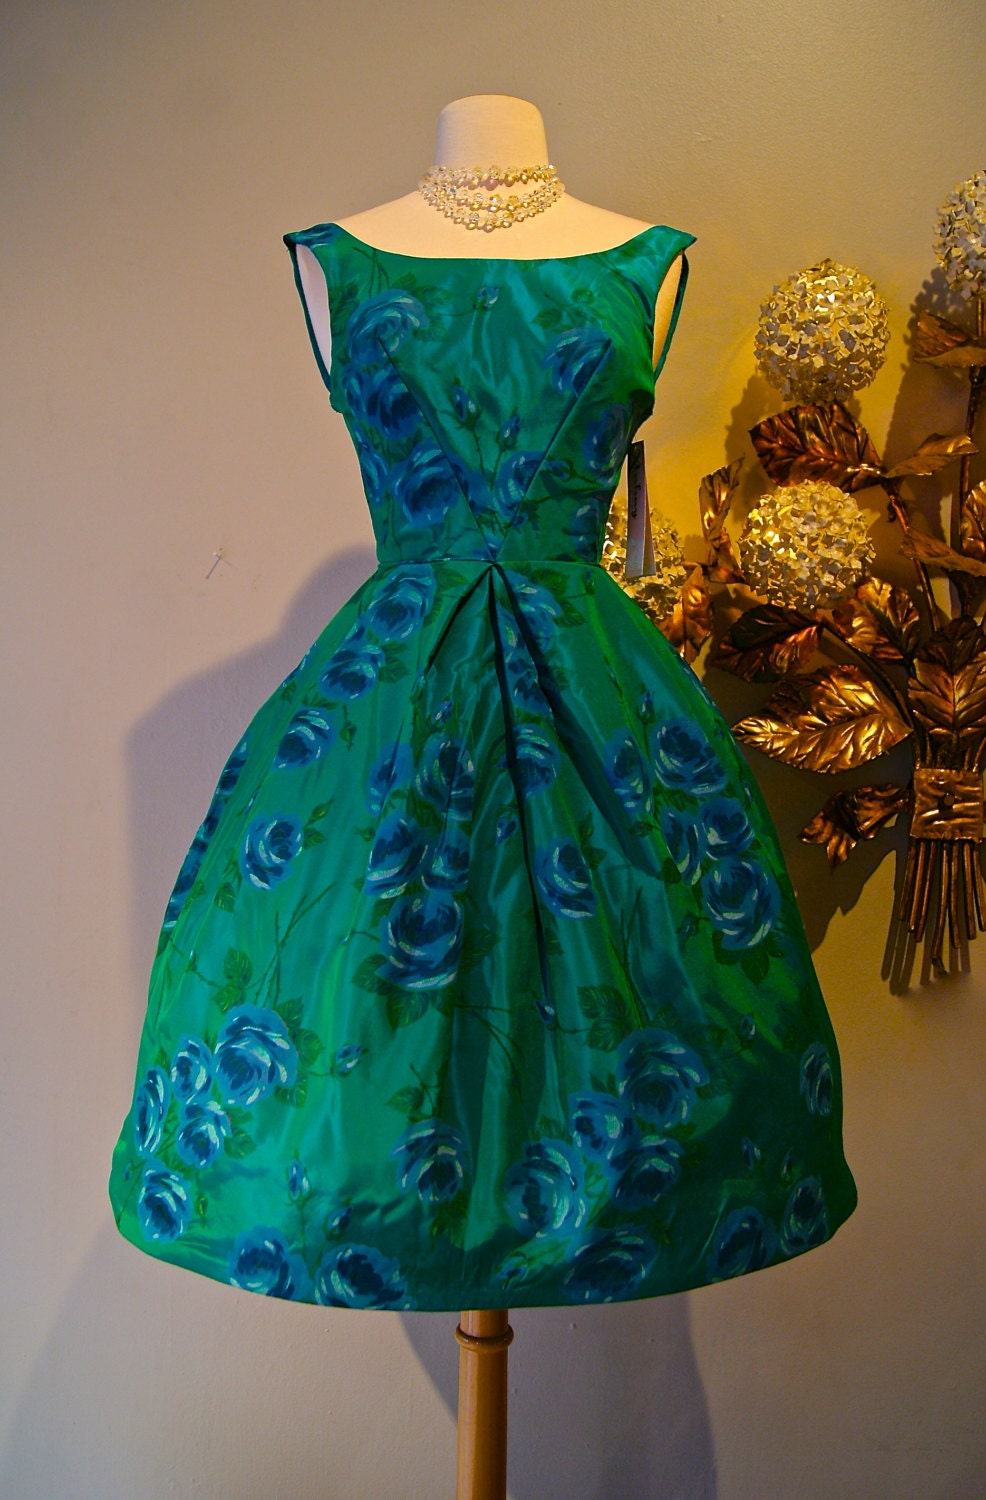 Vintage 50s Prom Dress / 1950's Rose Print Party Dress in